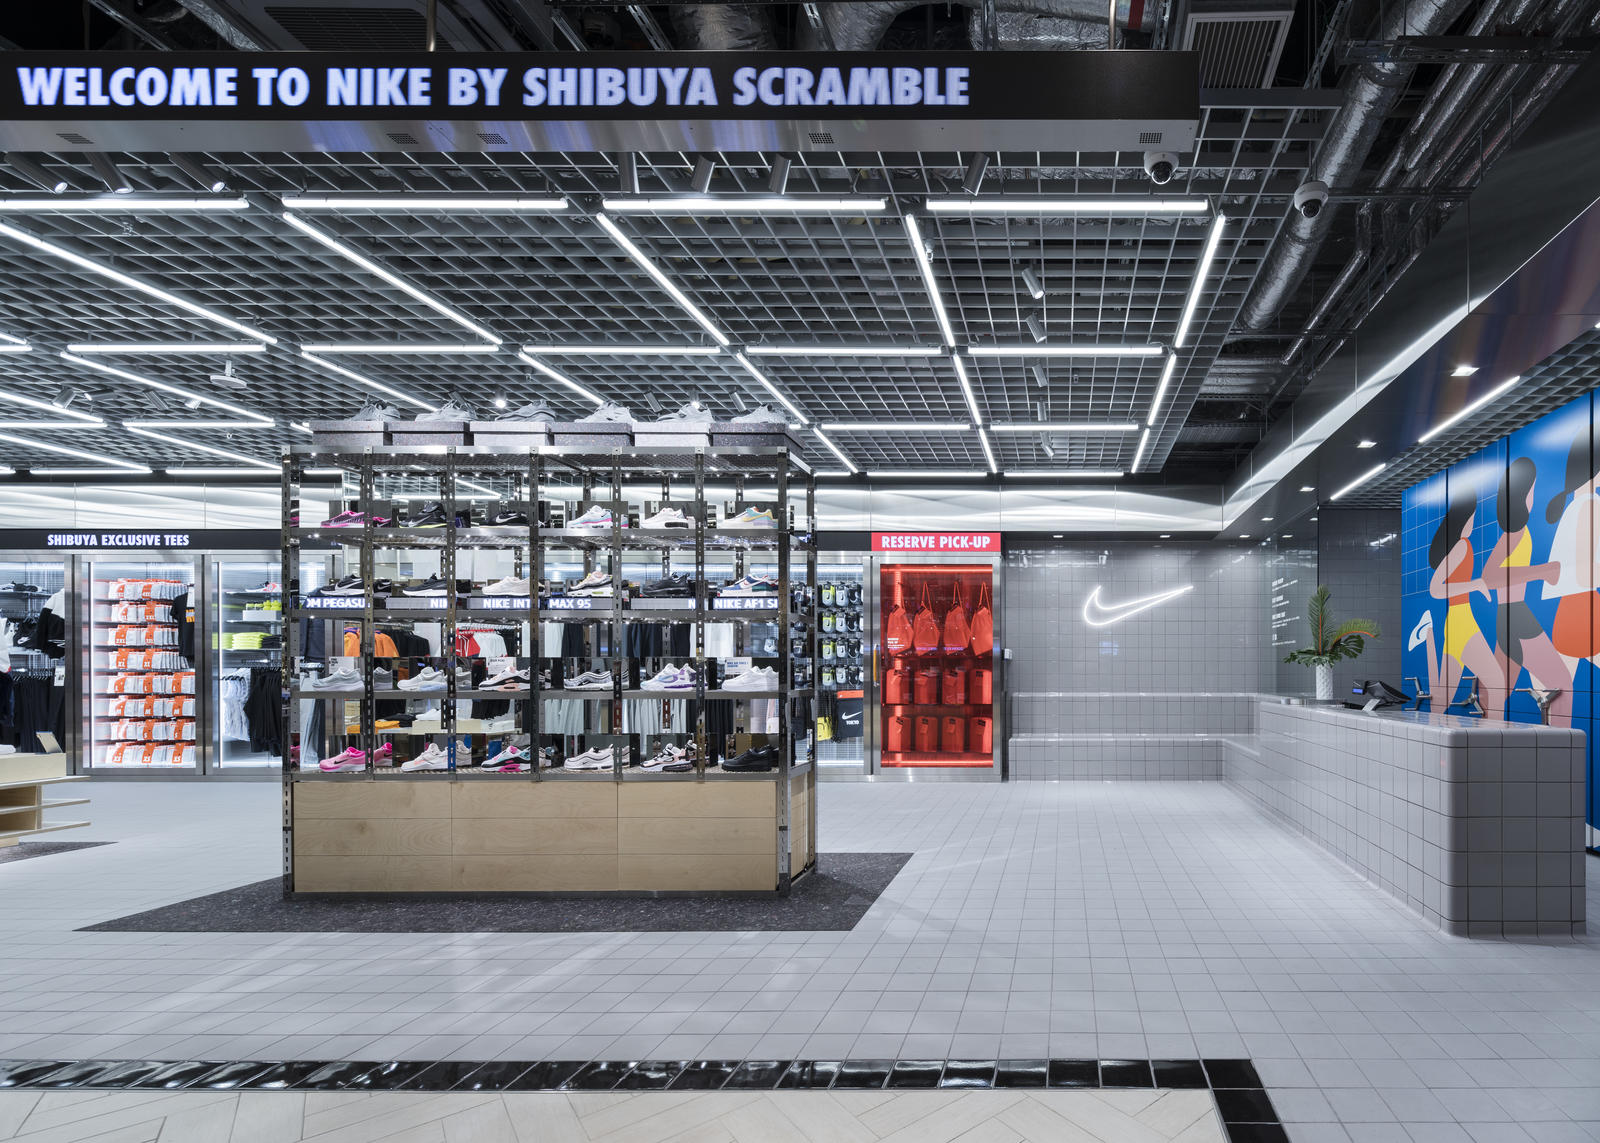 Nike Live Launches in Long Beach and Shibuya Scramble 4